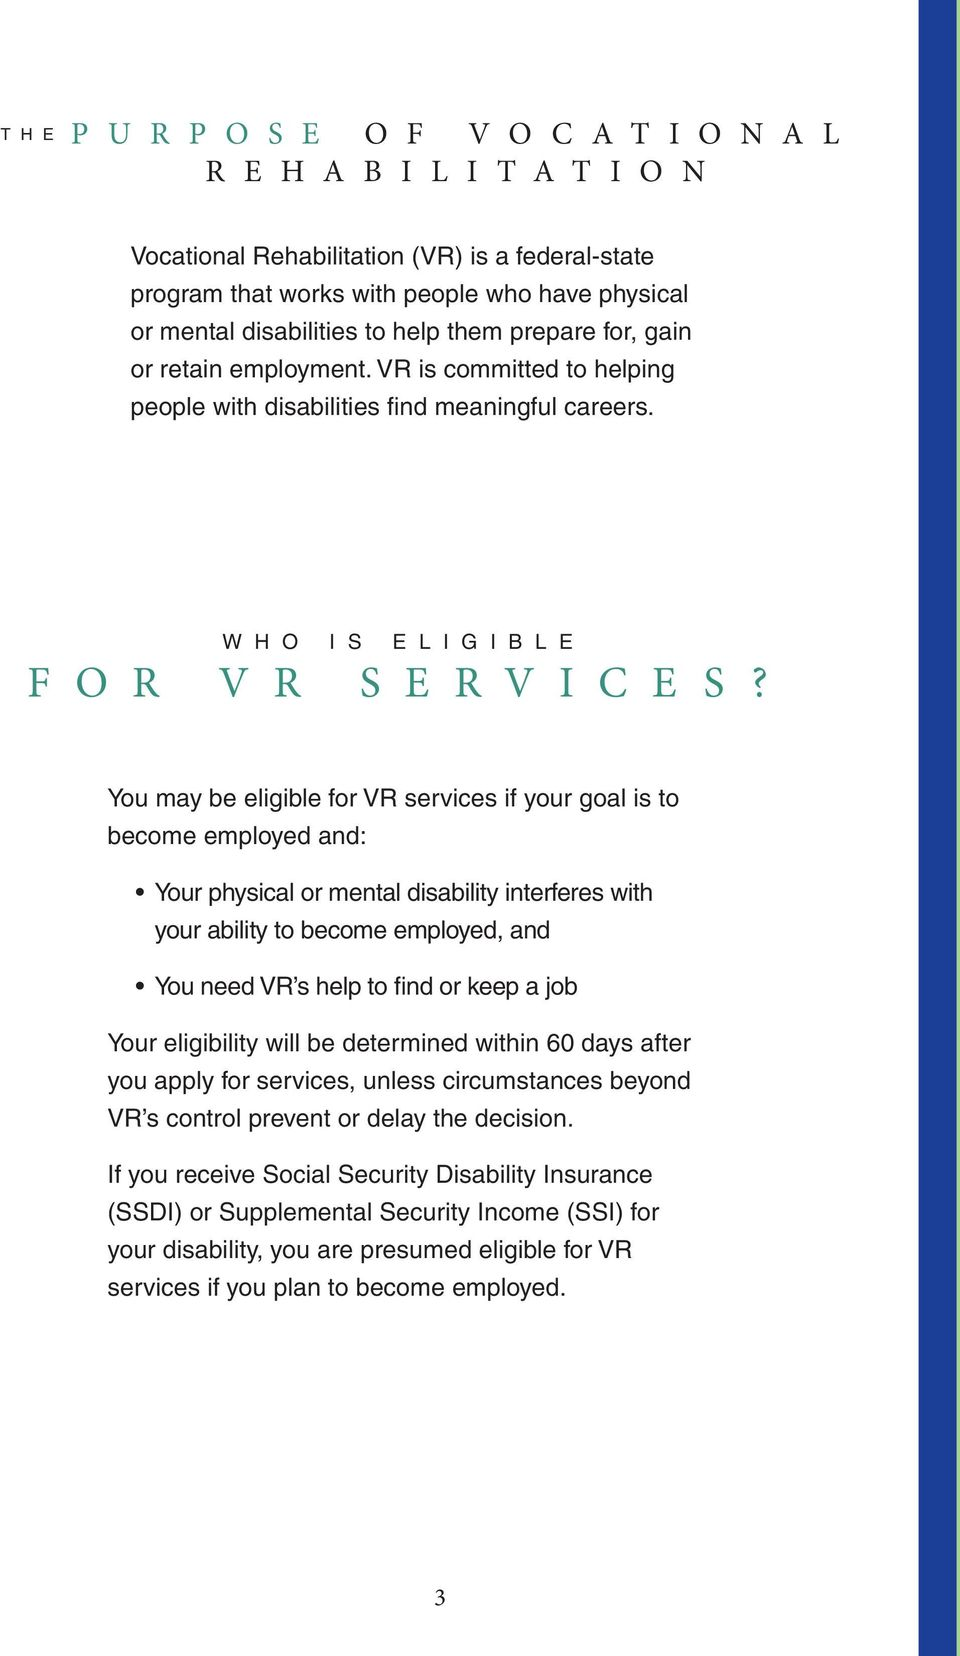 You may be eligible for VR services if your goal is to become employed and: Your physical or mental disability interferes with your ability to become employed, and You need VR s help to find or keep